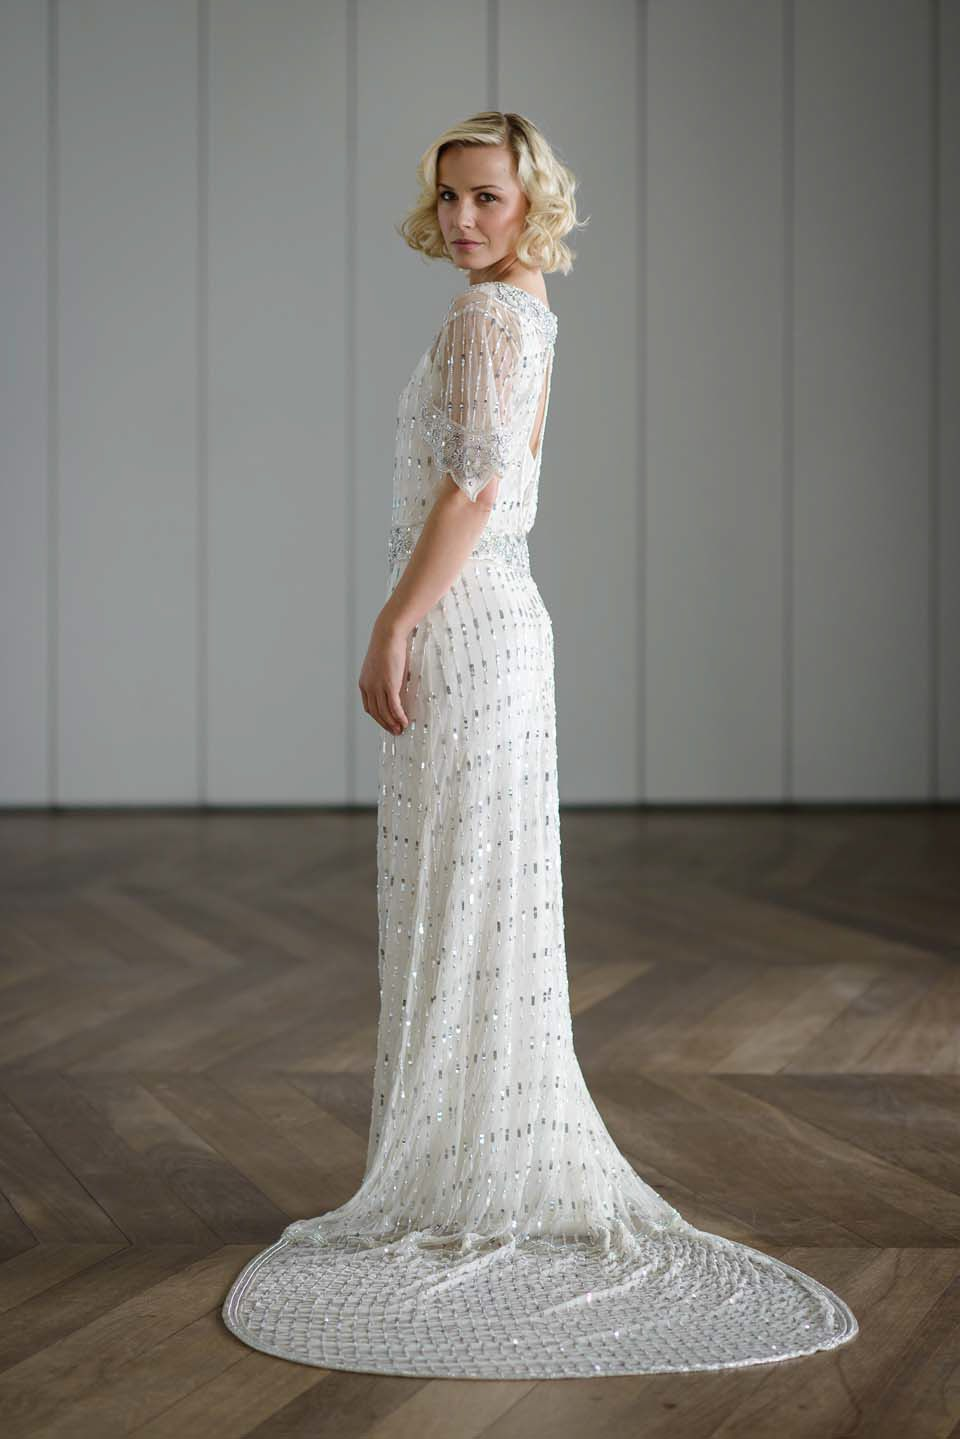 1920's style wedding dresses  Vicky Rowe A Debut Collection of s and s Inspired Heirloom